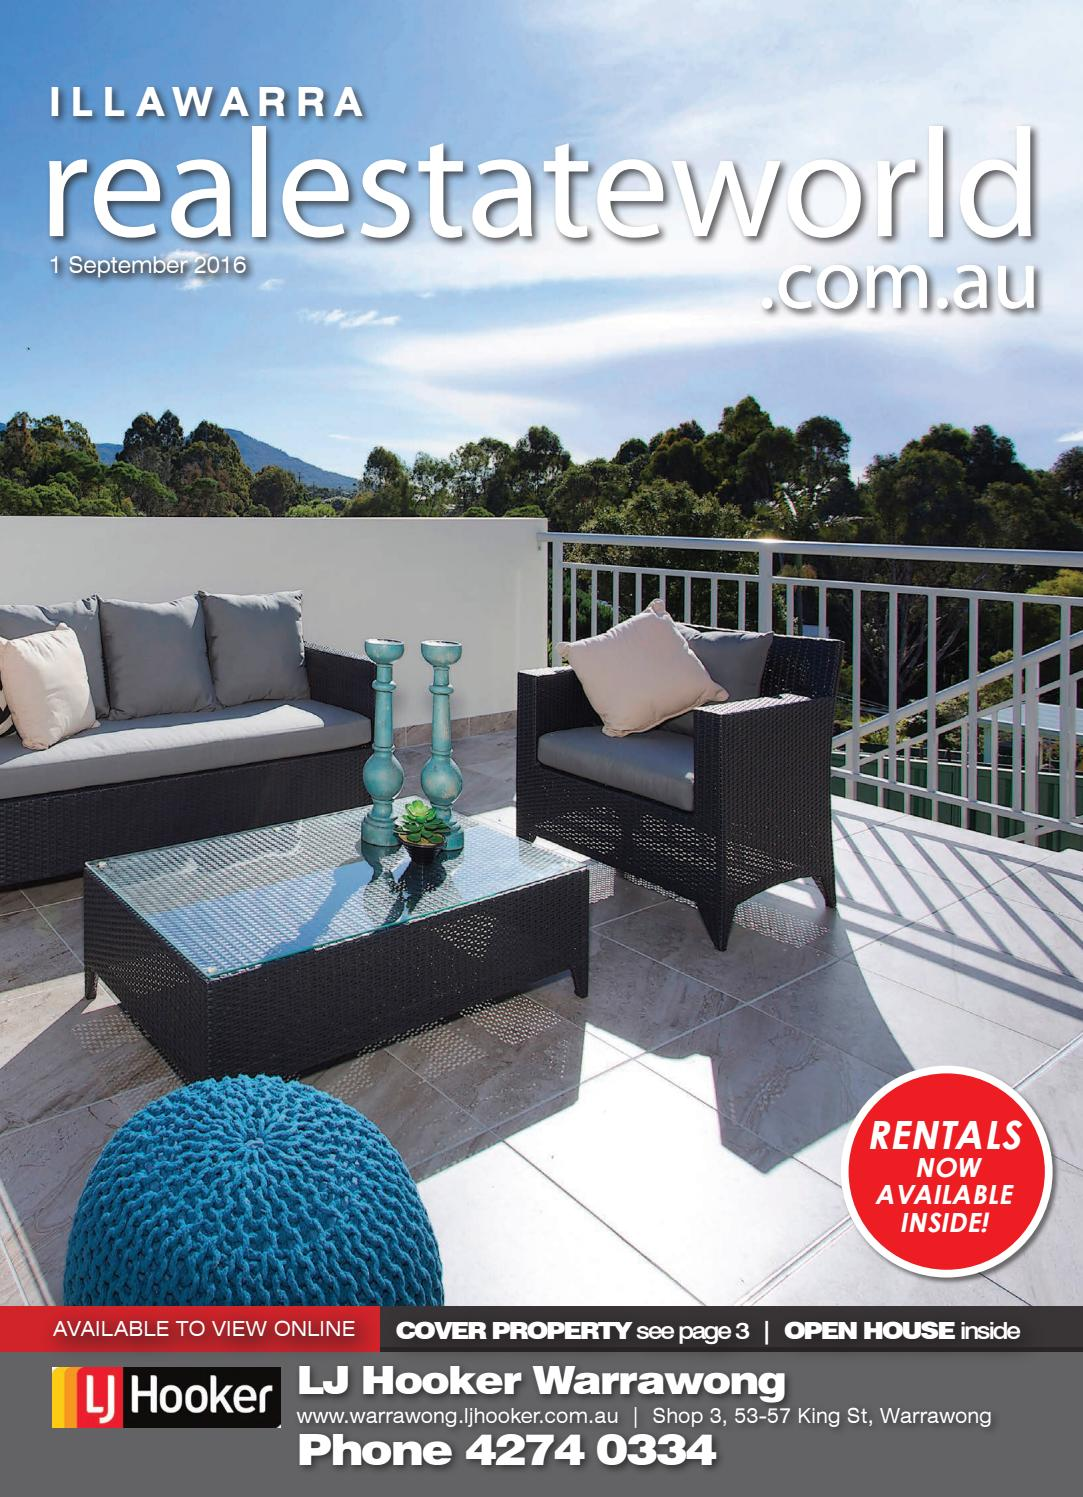 Furniture Shops Wollongong Realestateworld Au Illawarra Real Estate Publication Issue